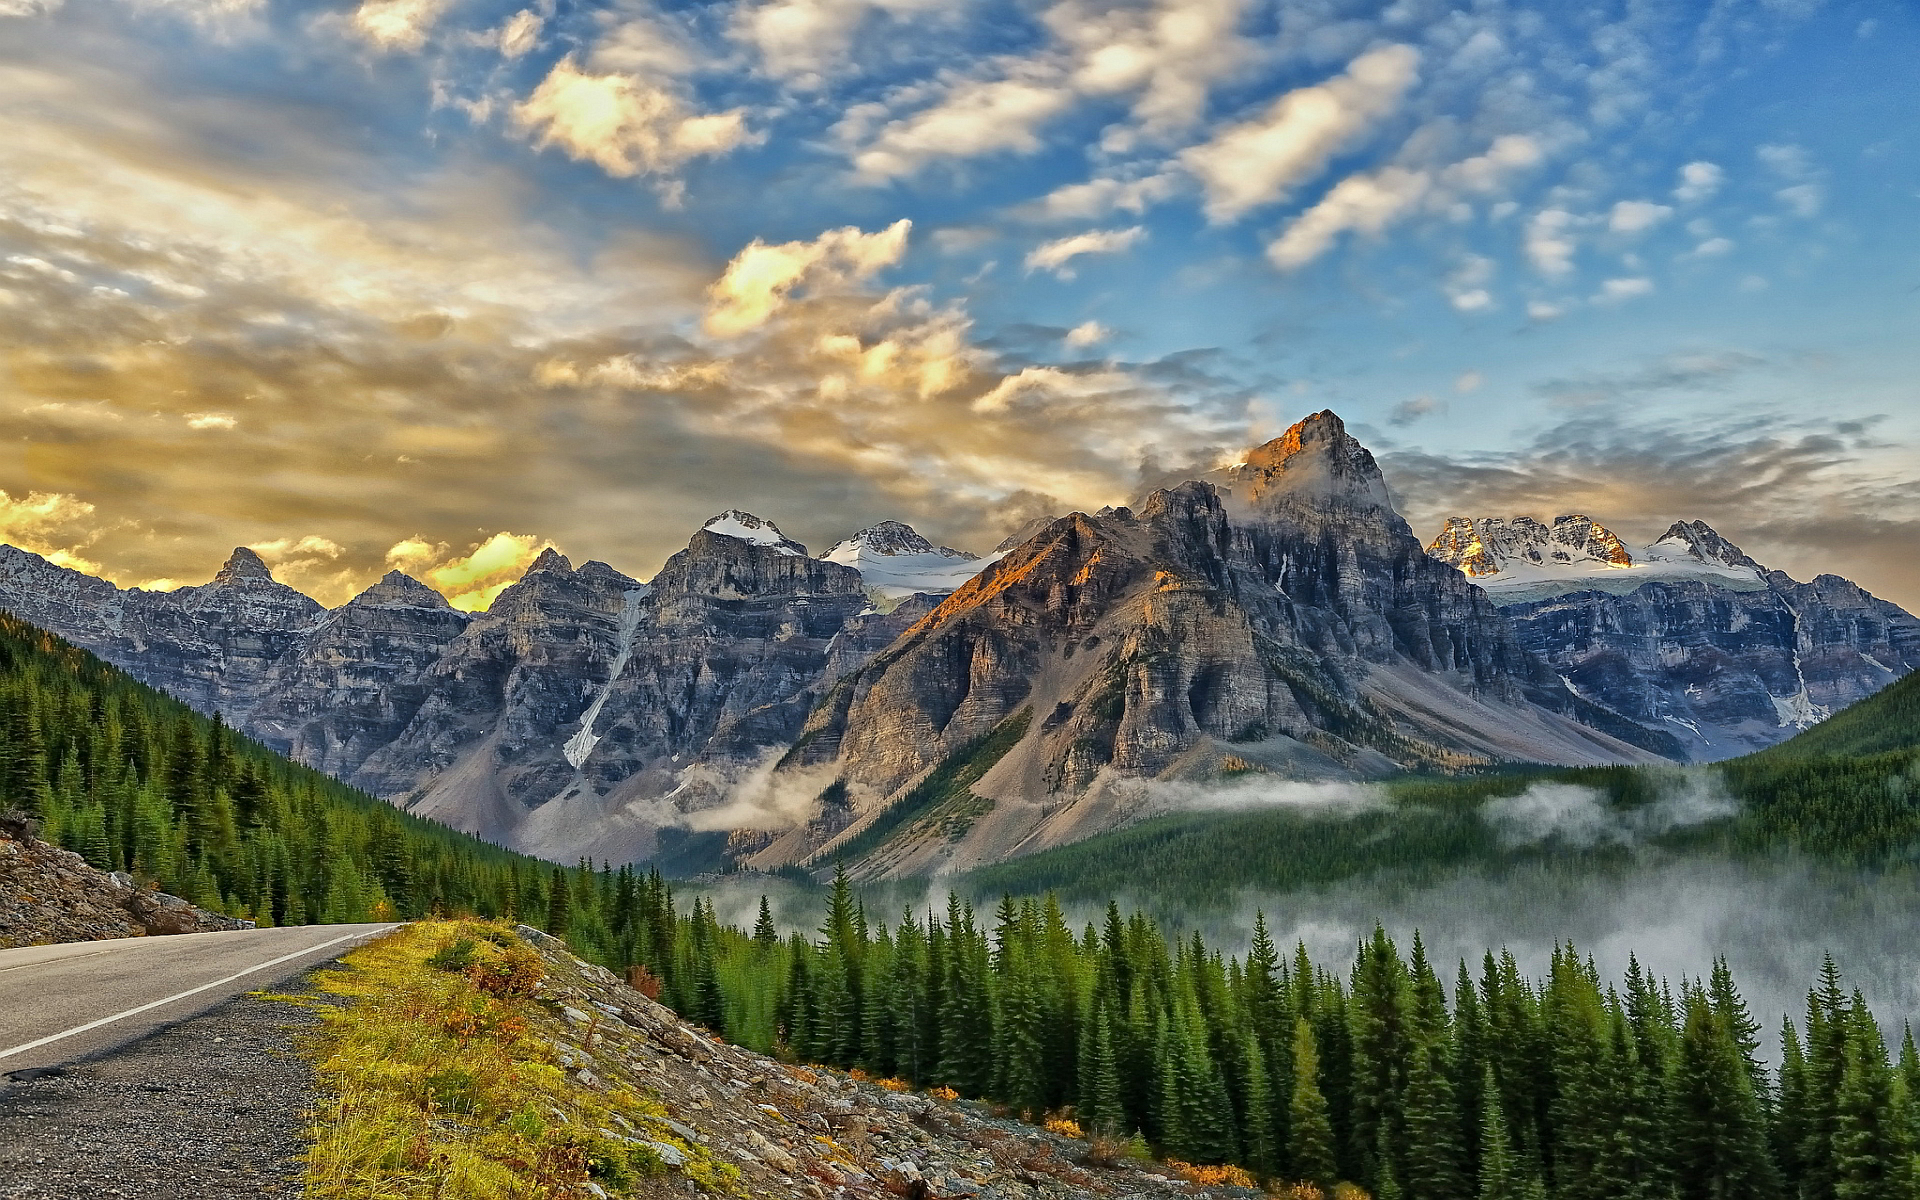 mountains nature scenery background